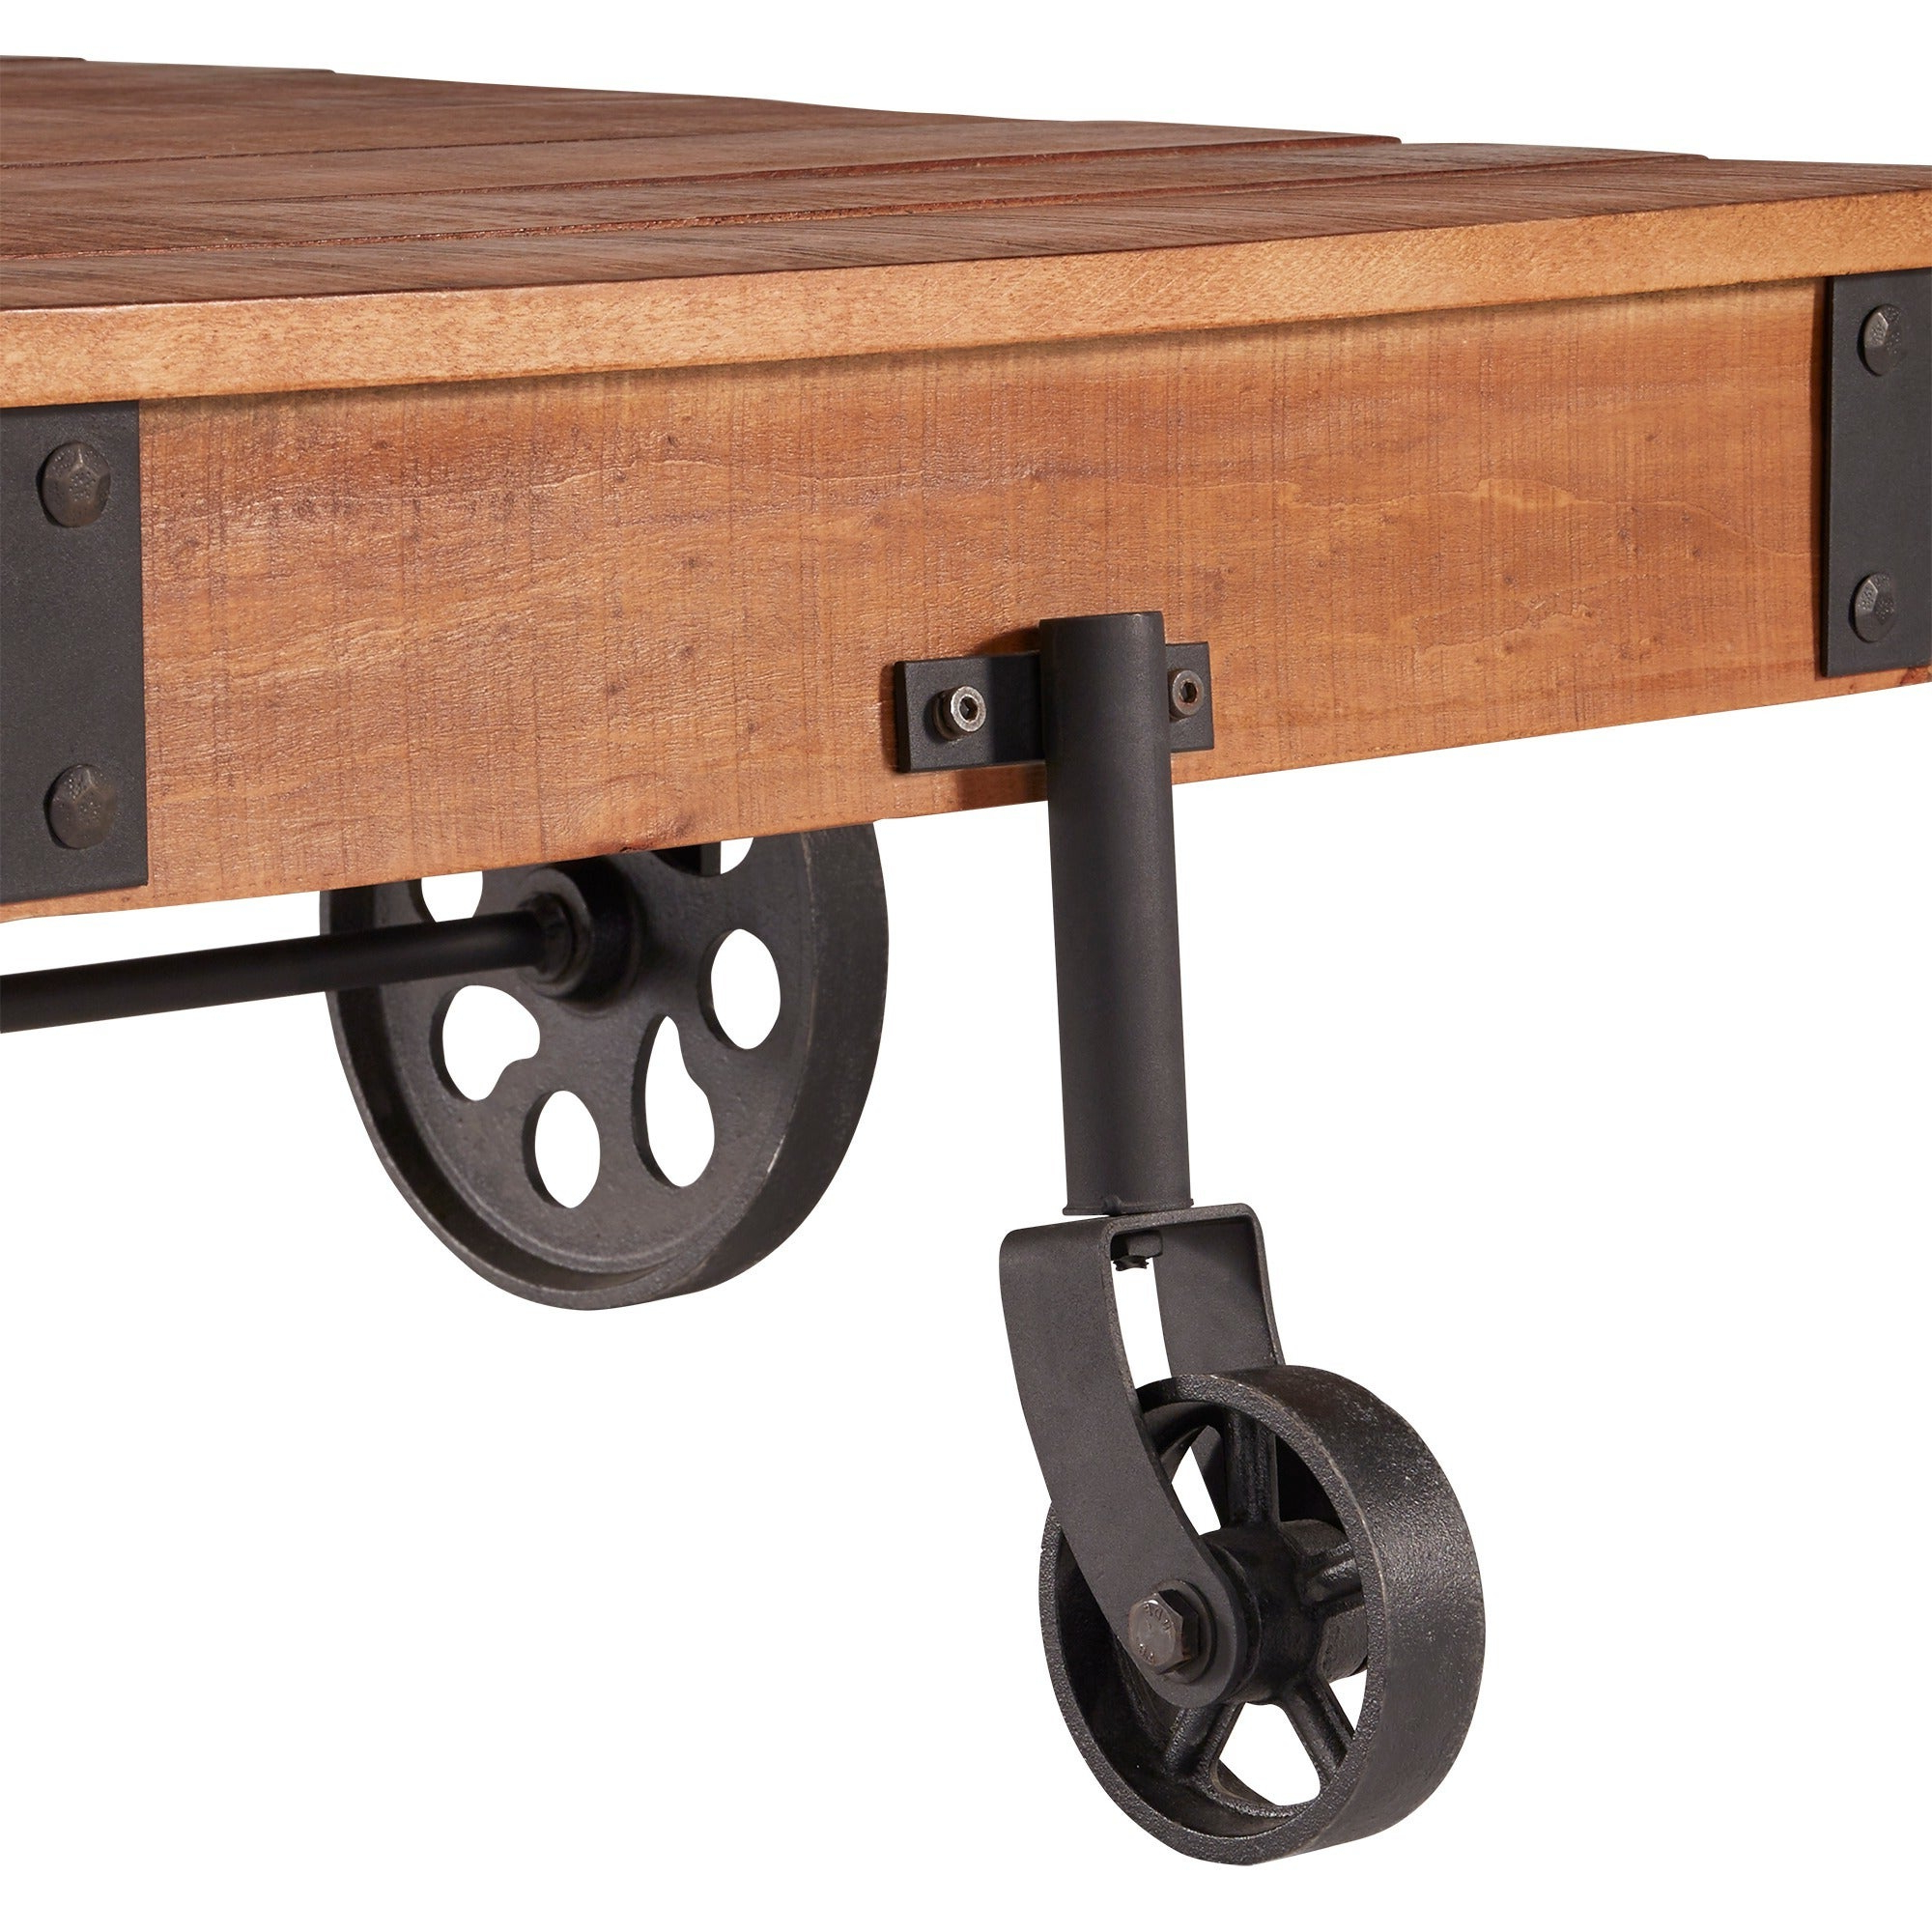 Myra Vintage Industrial Modern Rustic 47 Inch Coffee Tableinspire Q  Classic Throughout Well Known Myra Vintage Industrial Modern Rustic 47 Inch Coffee Tables (View 13 of 20)